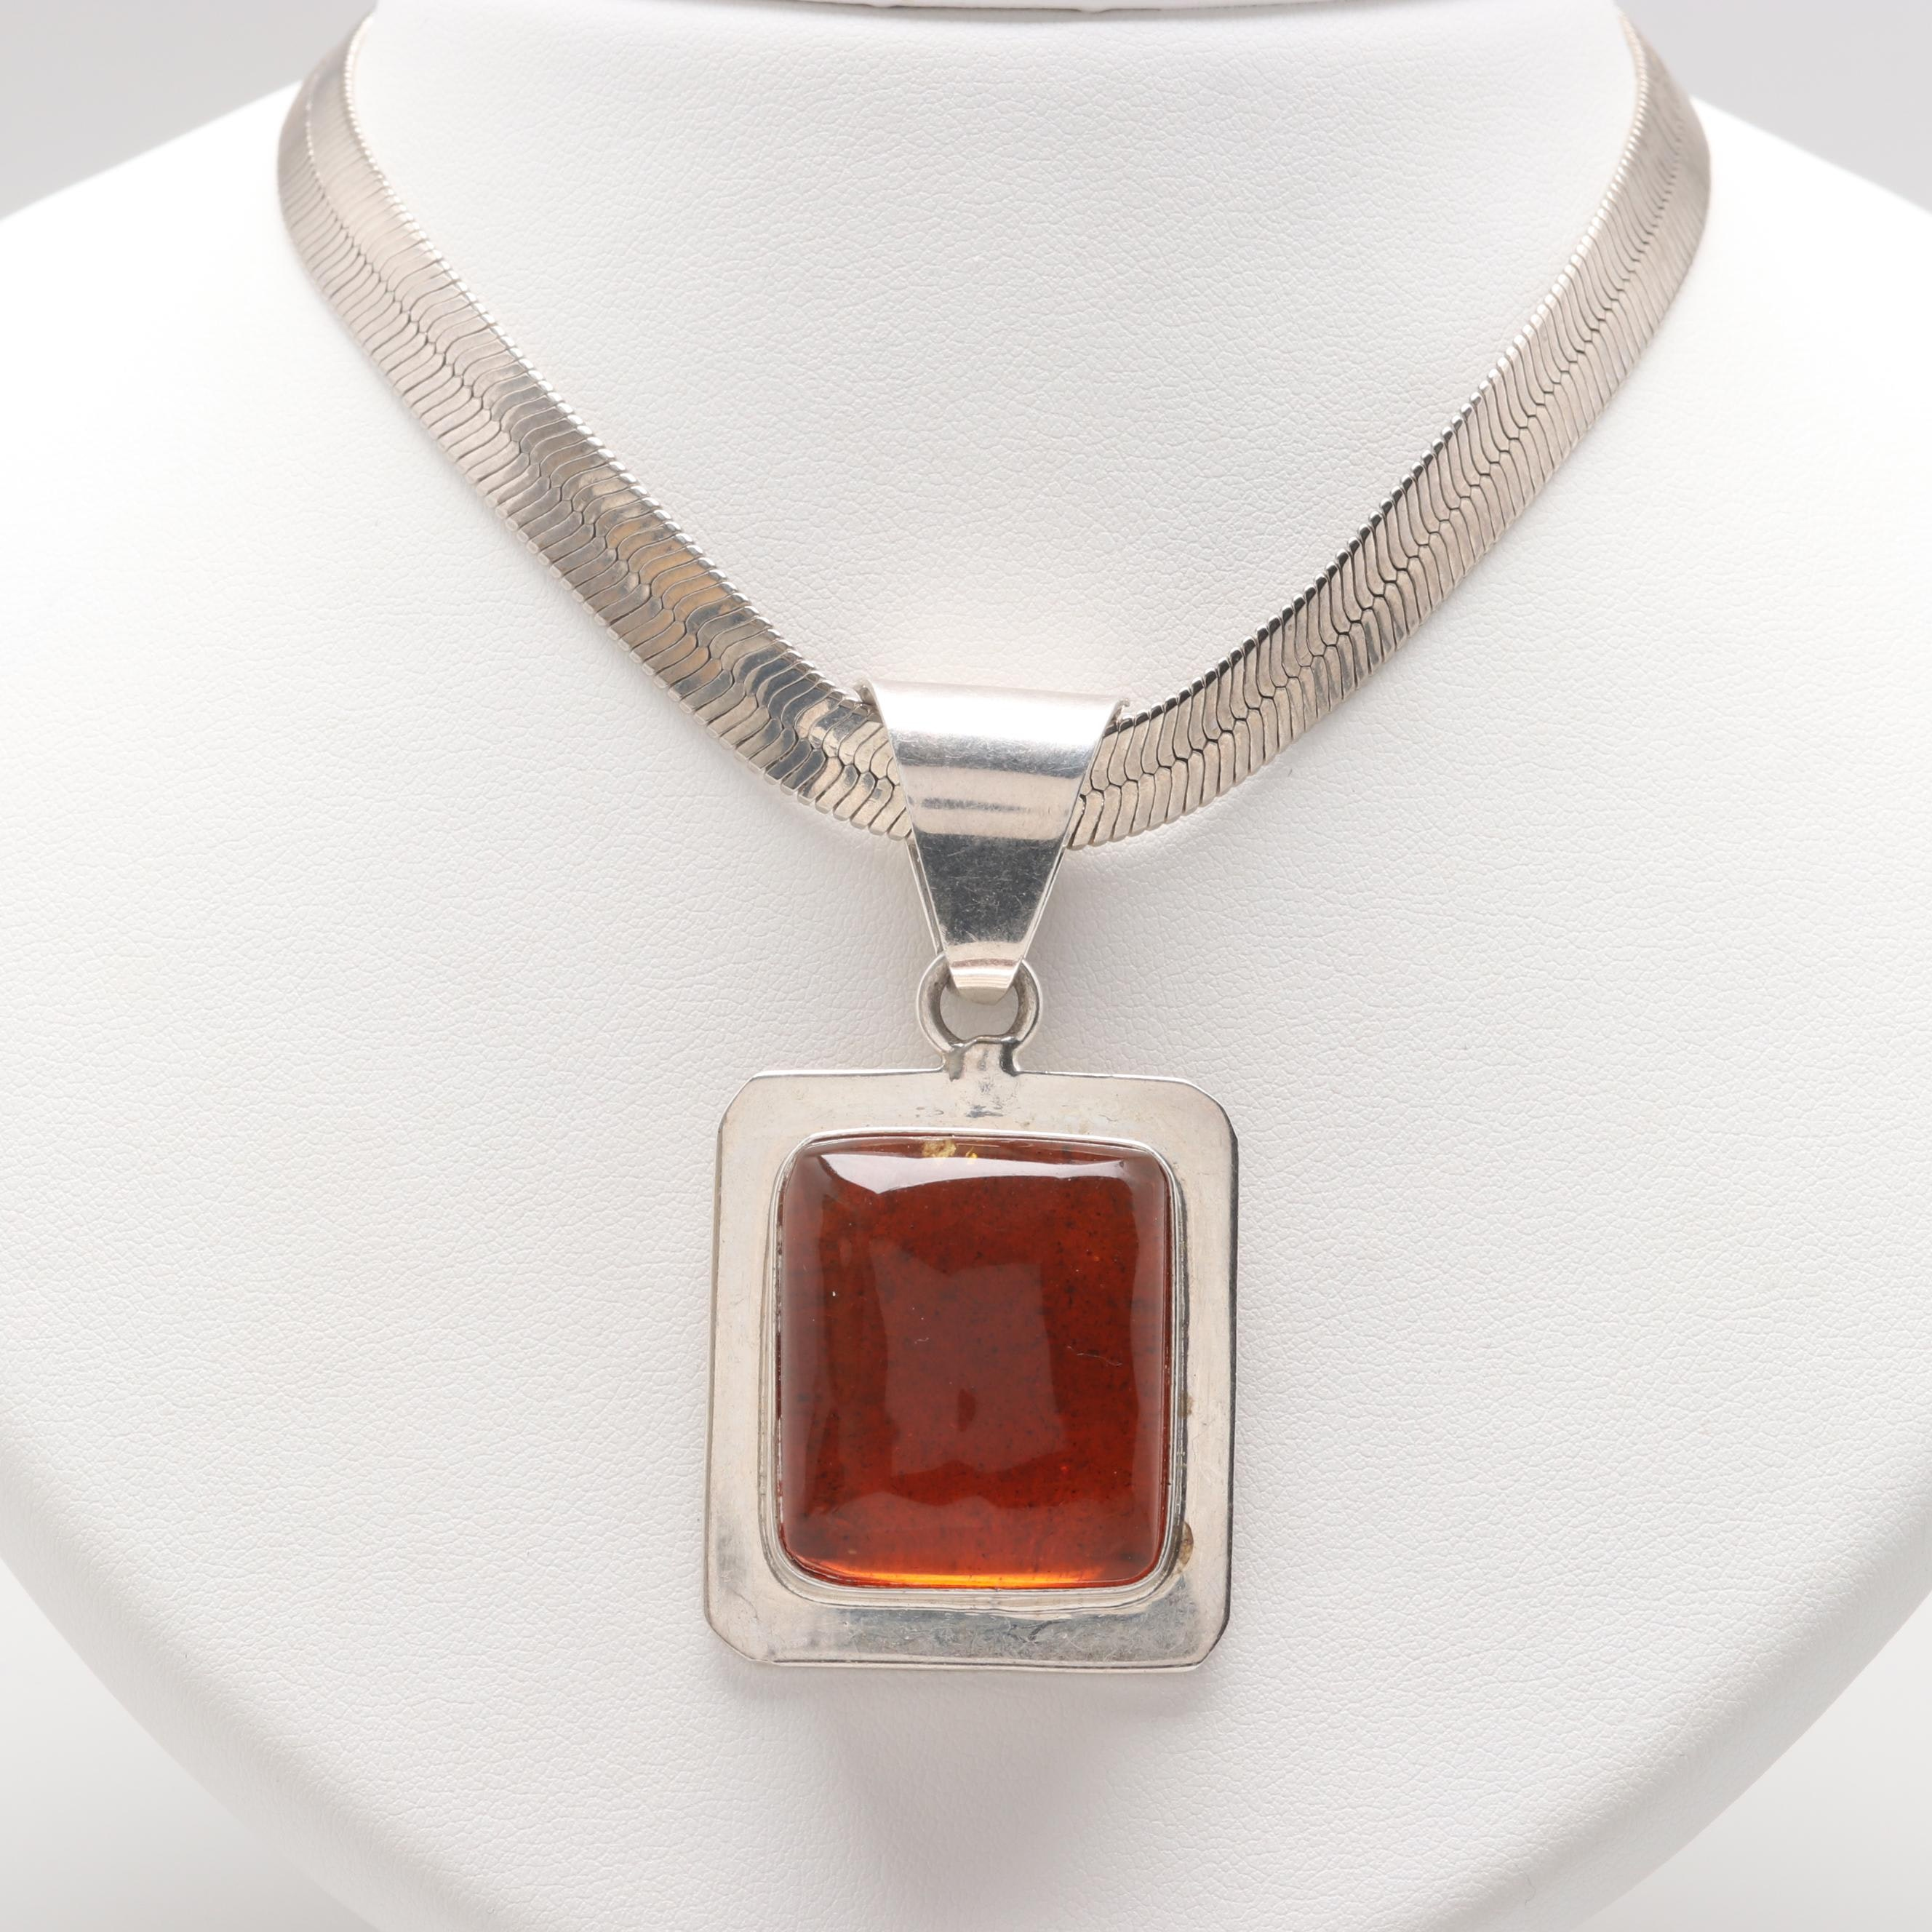 Mexican Sterling Silver Copal Resin Pendant Necklace